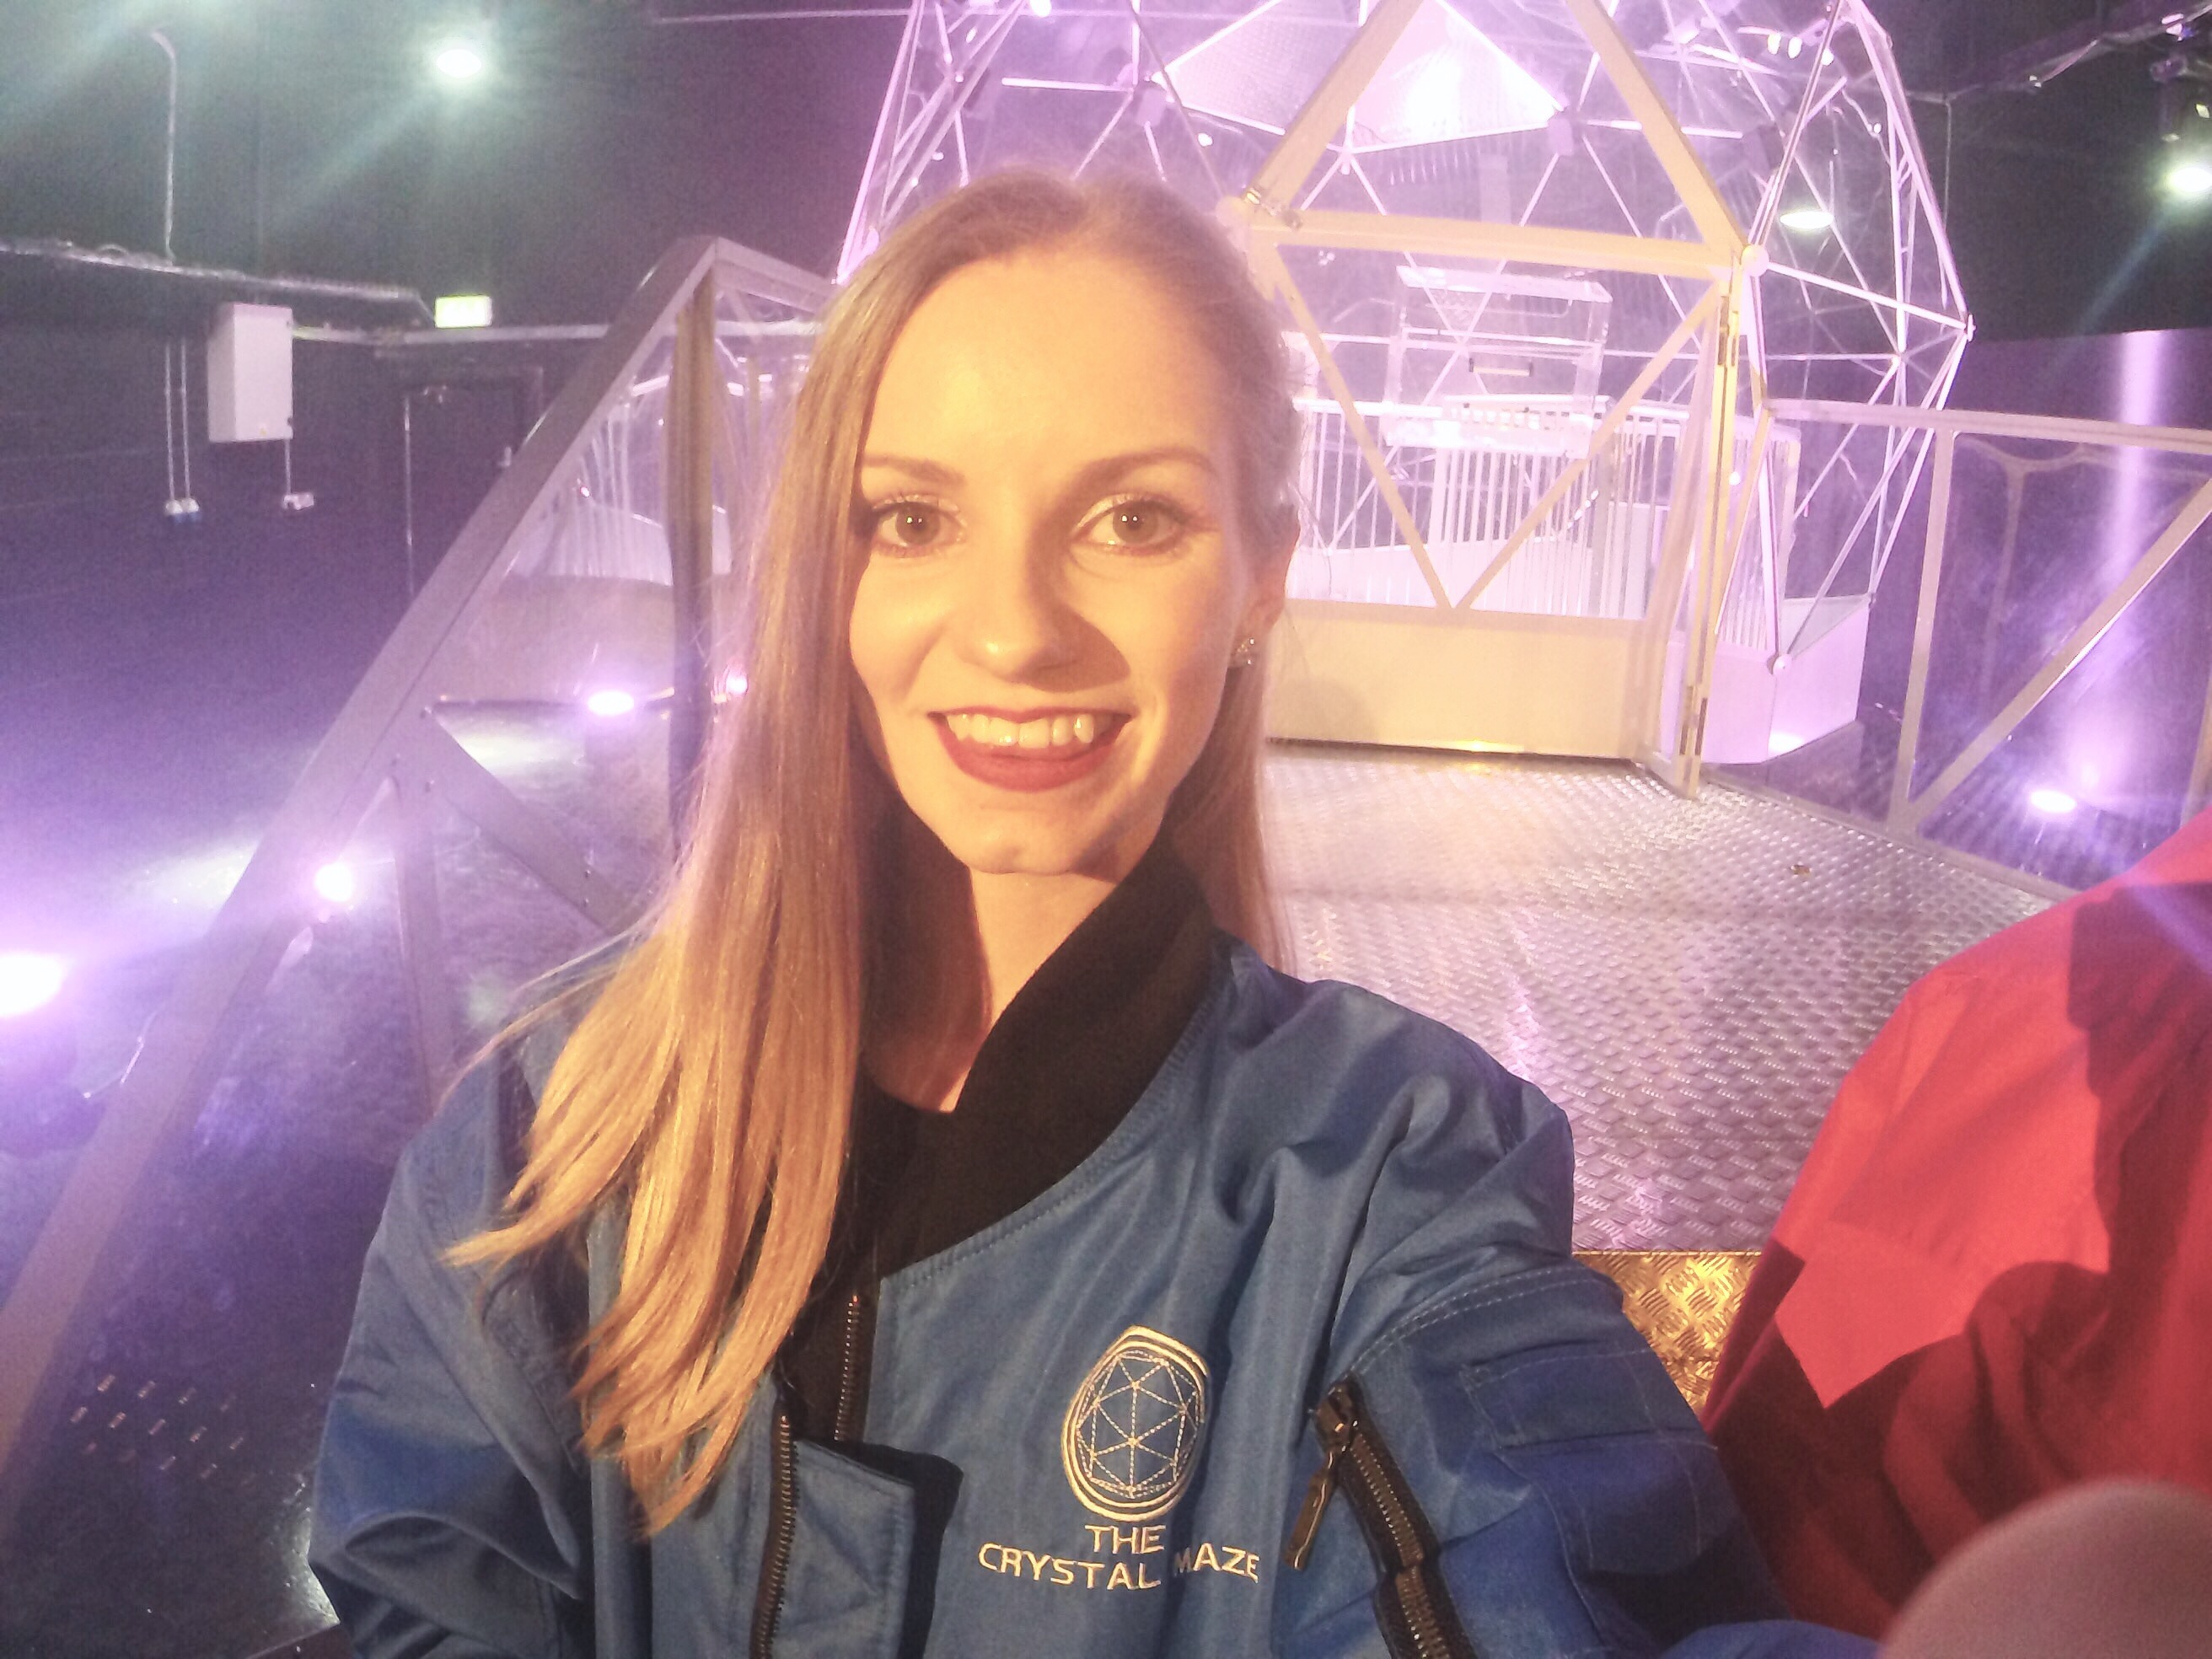 Crystal Maze Experience Manchester press day crystal dome